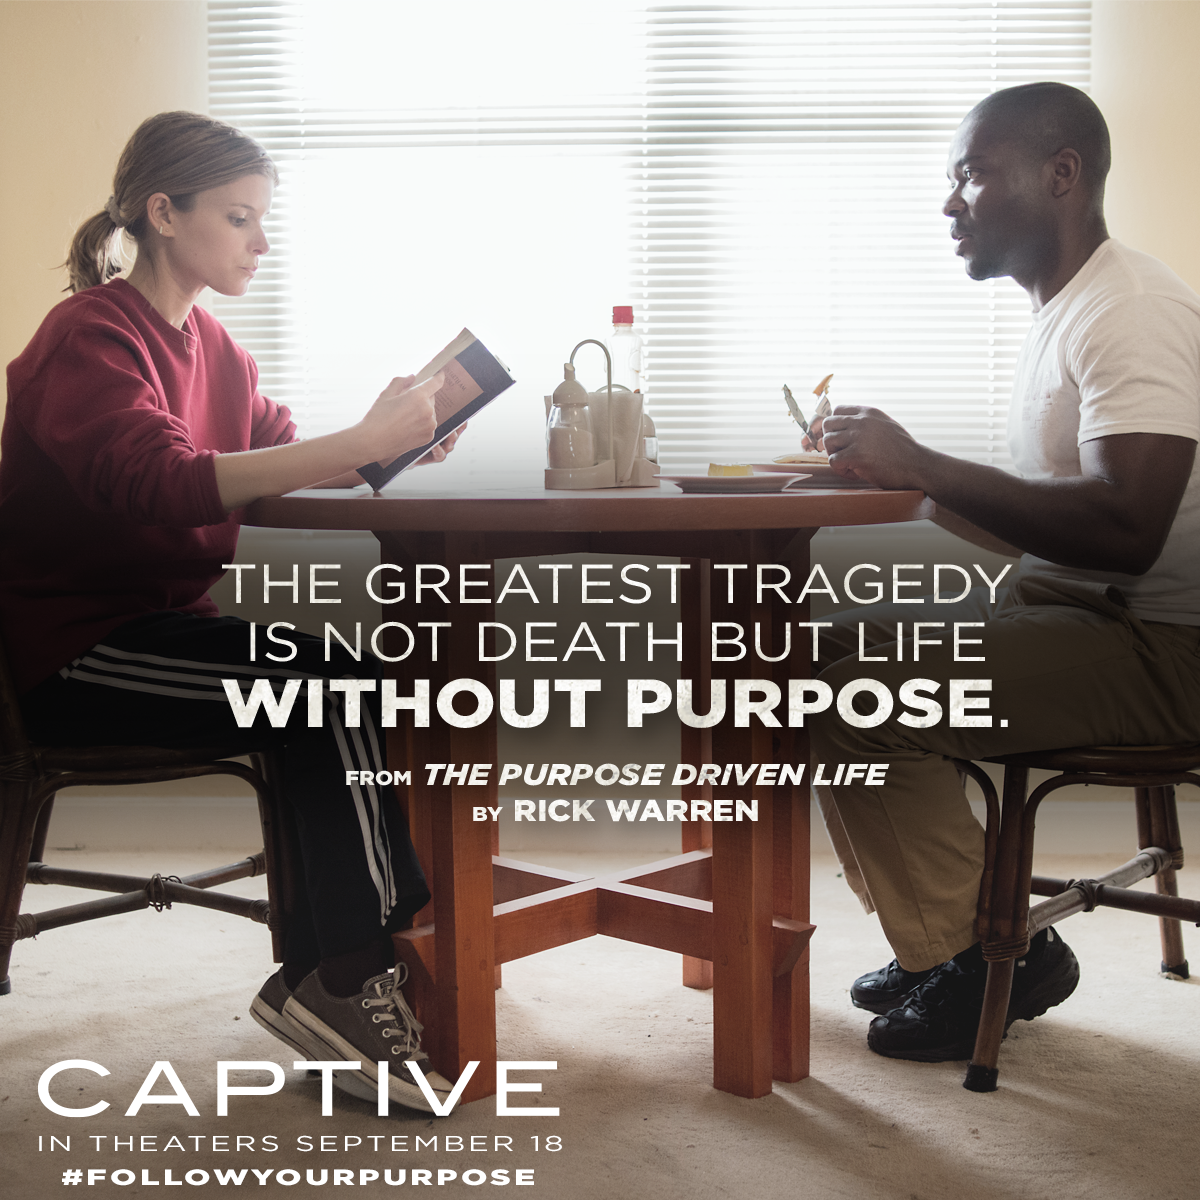 Quote from The Purpose Driven Life with photo from Captive